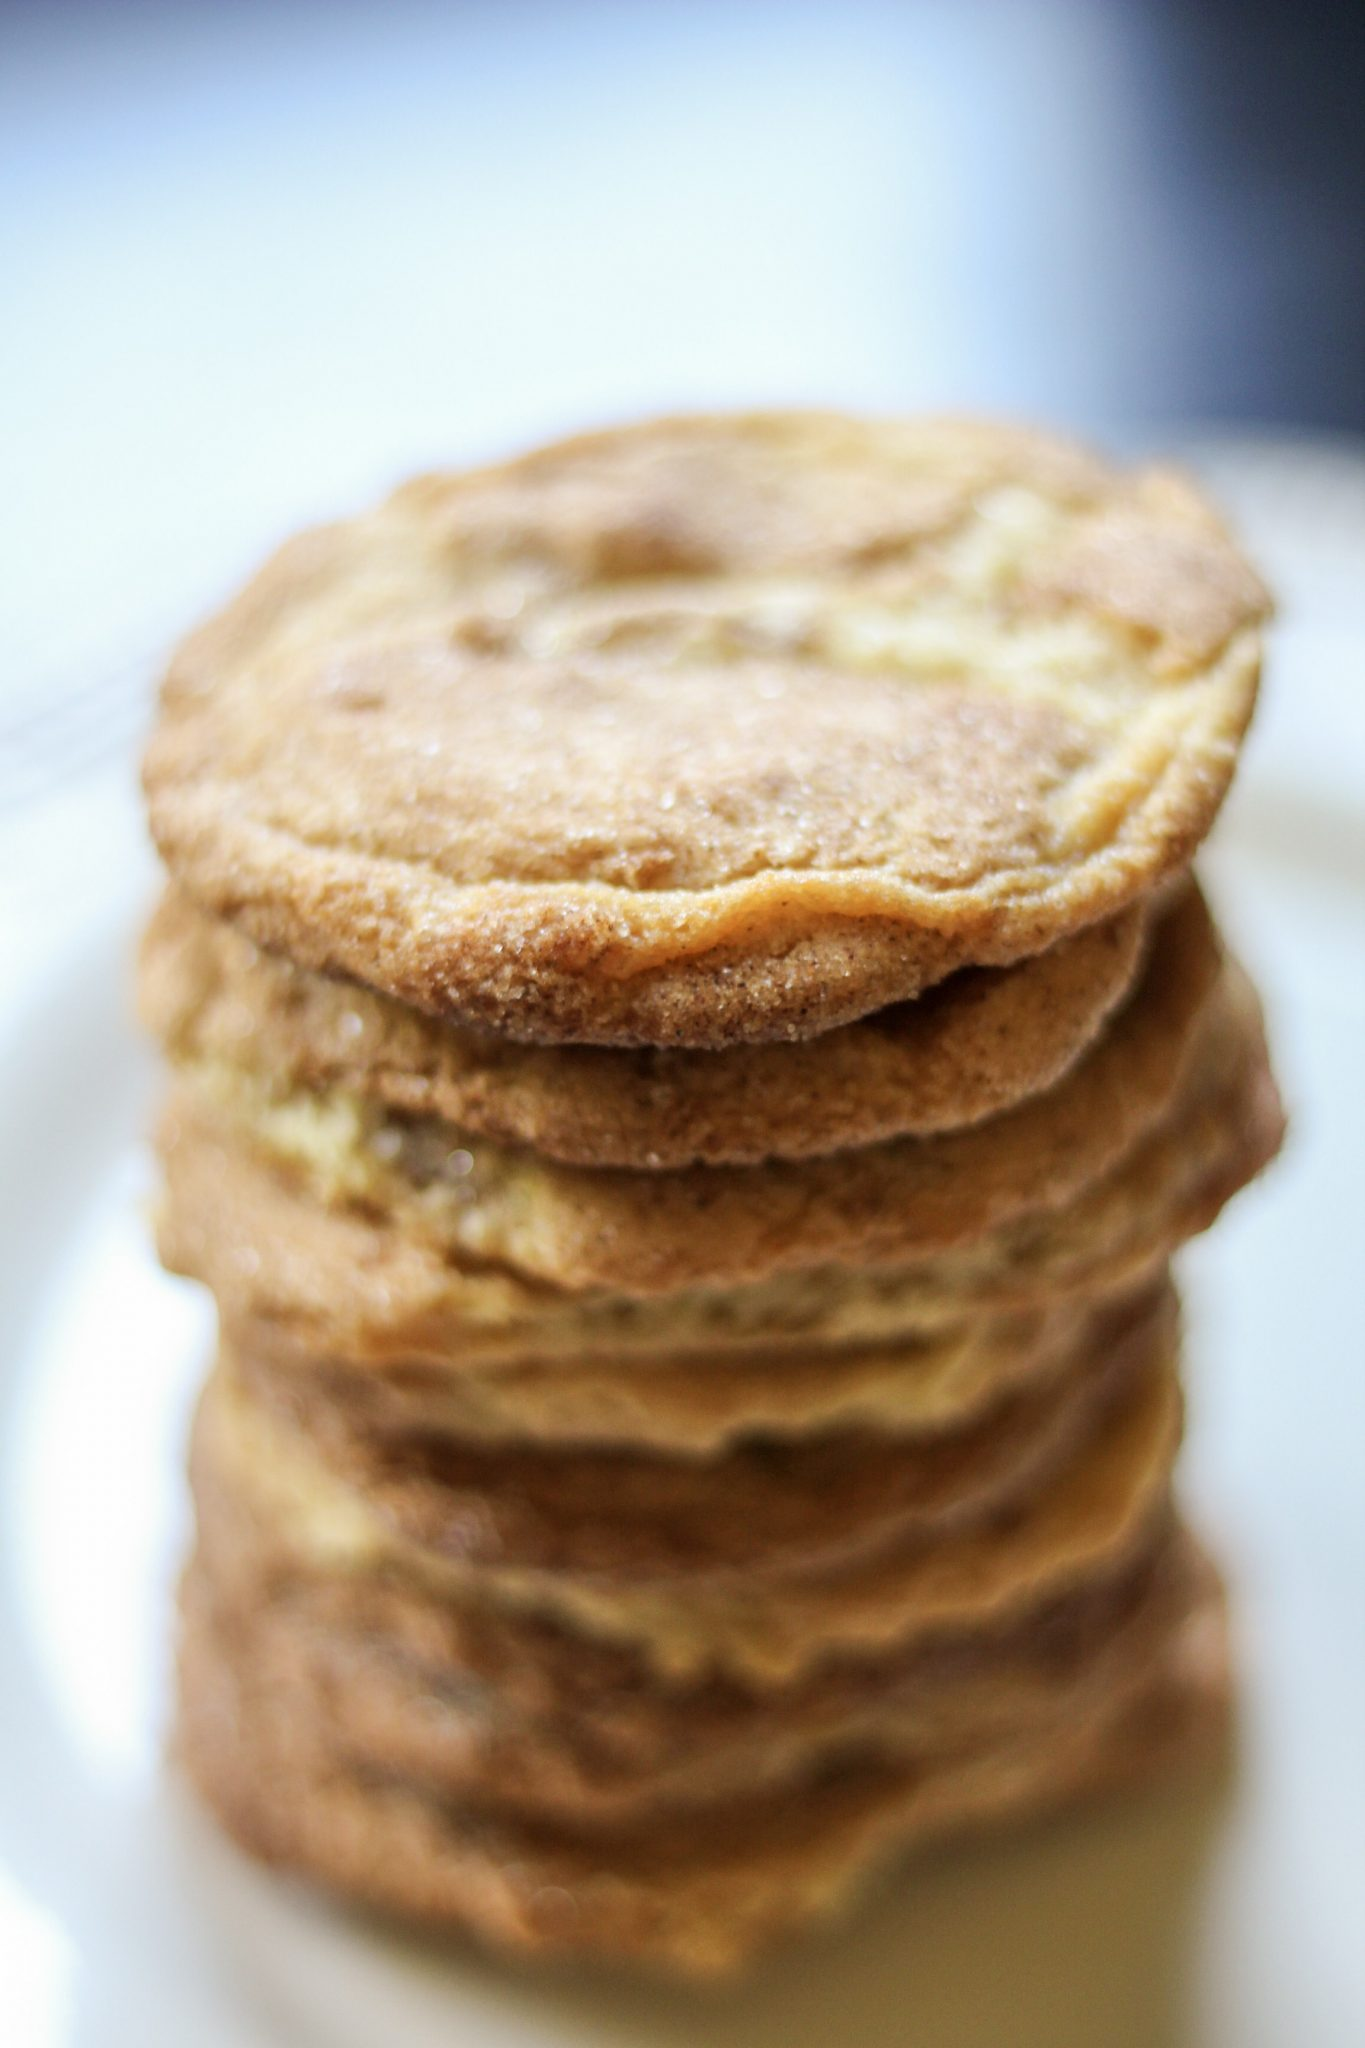 How to make Snickerdoodle Cookies. This Snickerdoodle Cookie recipe is one of our all-time favorite cookie recipes. They are easy to make, loaded with cinnamon flavor.